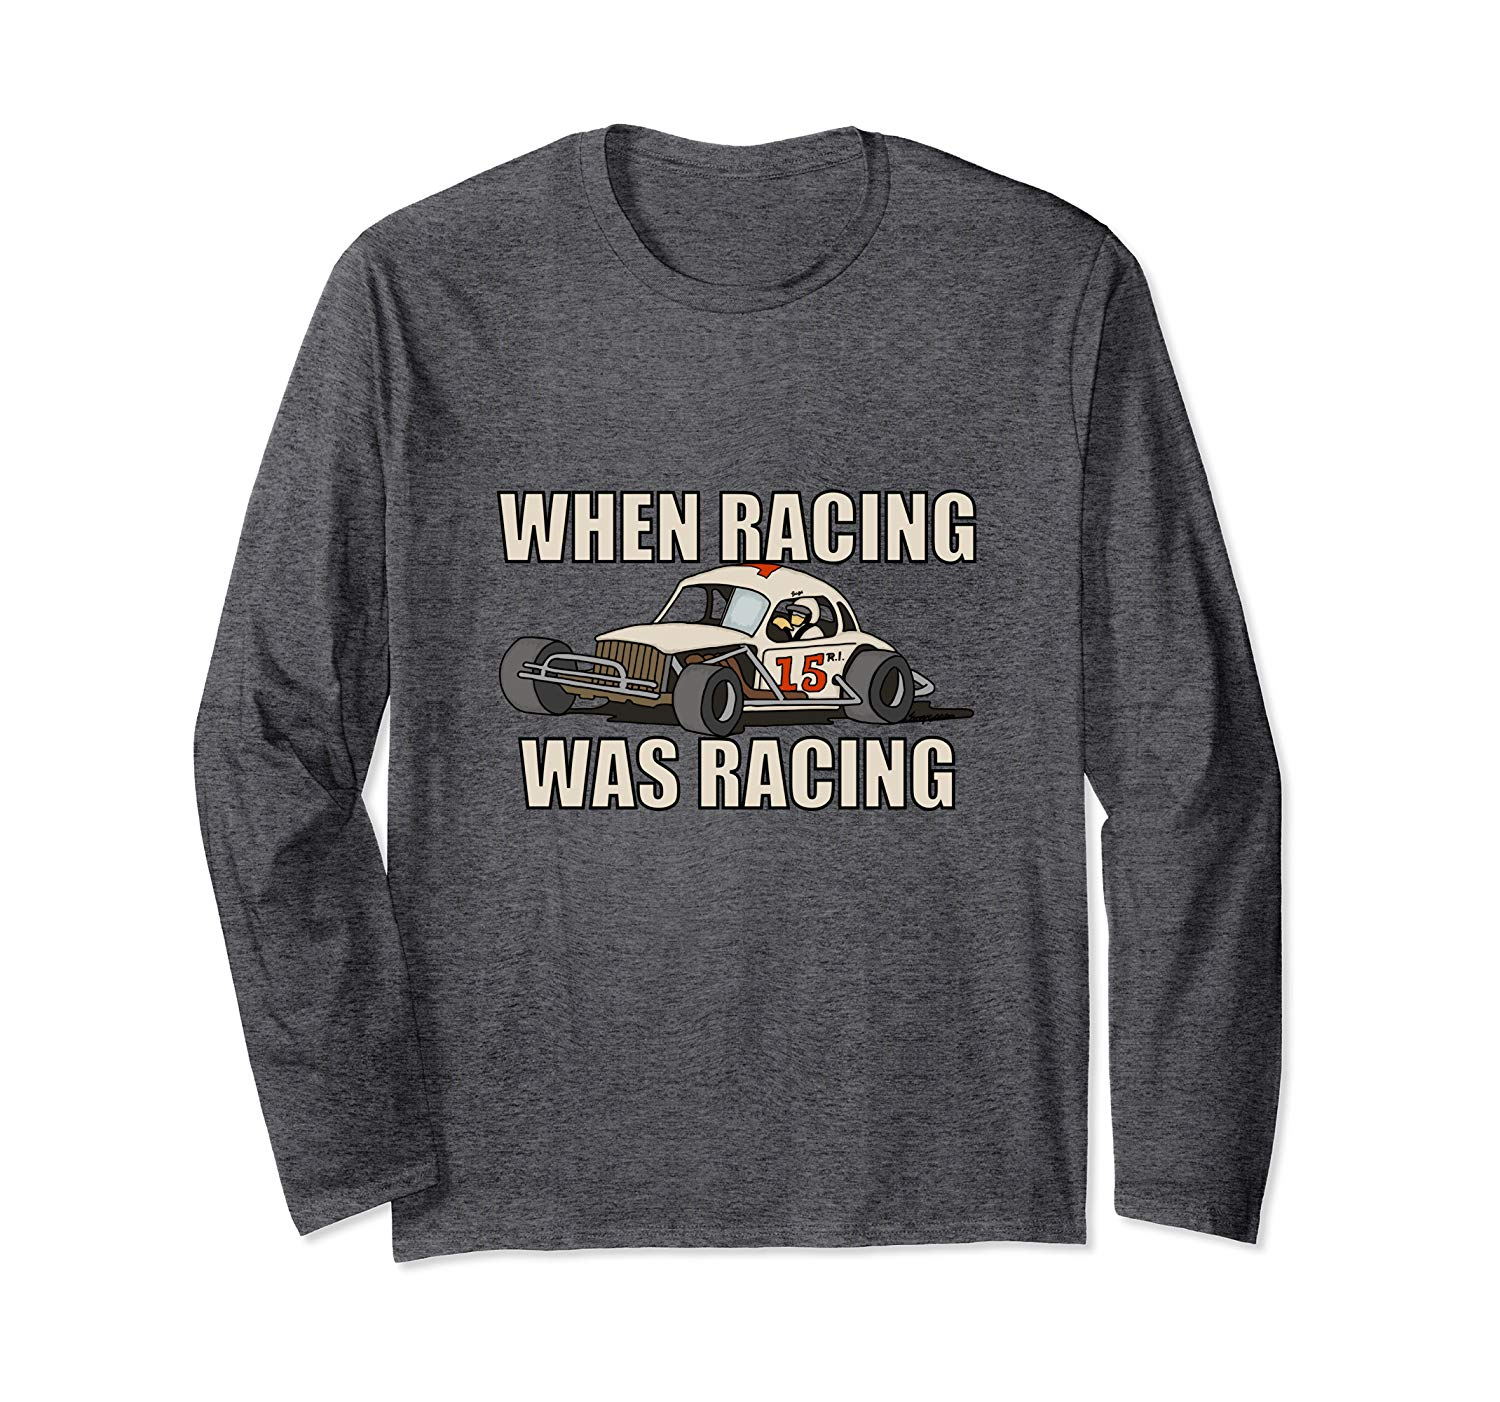 Stock Car Shirt RACING WAS RACING White Coupe racing gift long sleeve